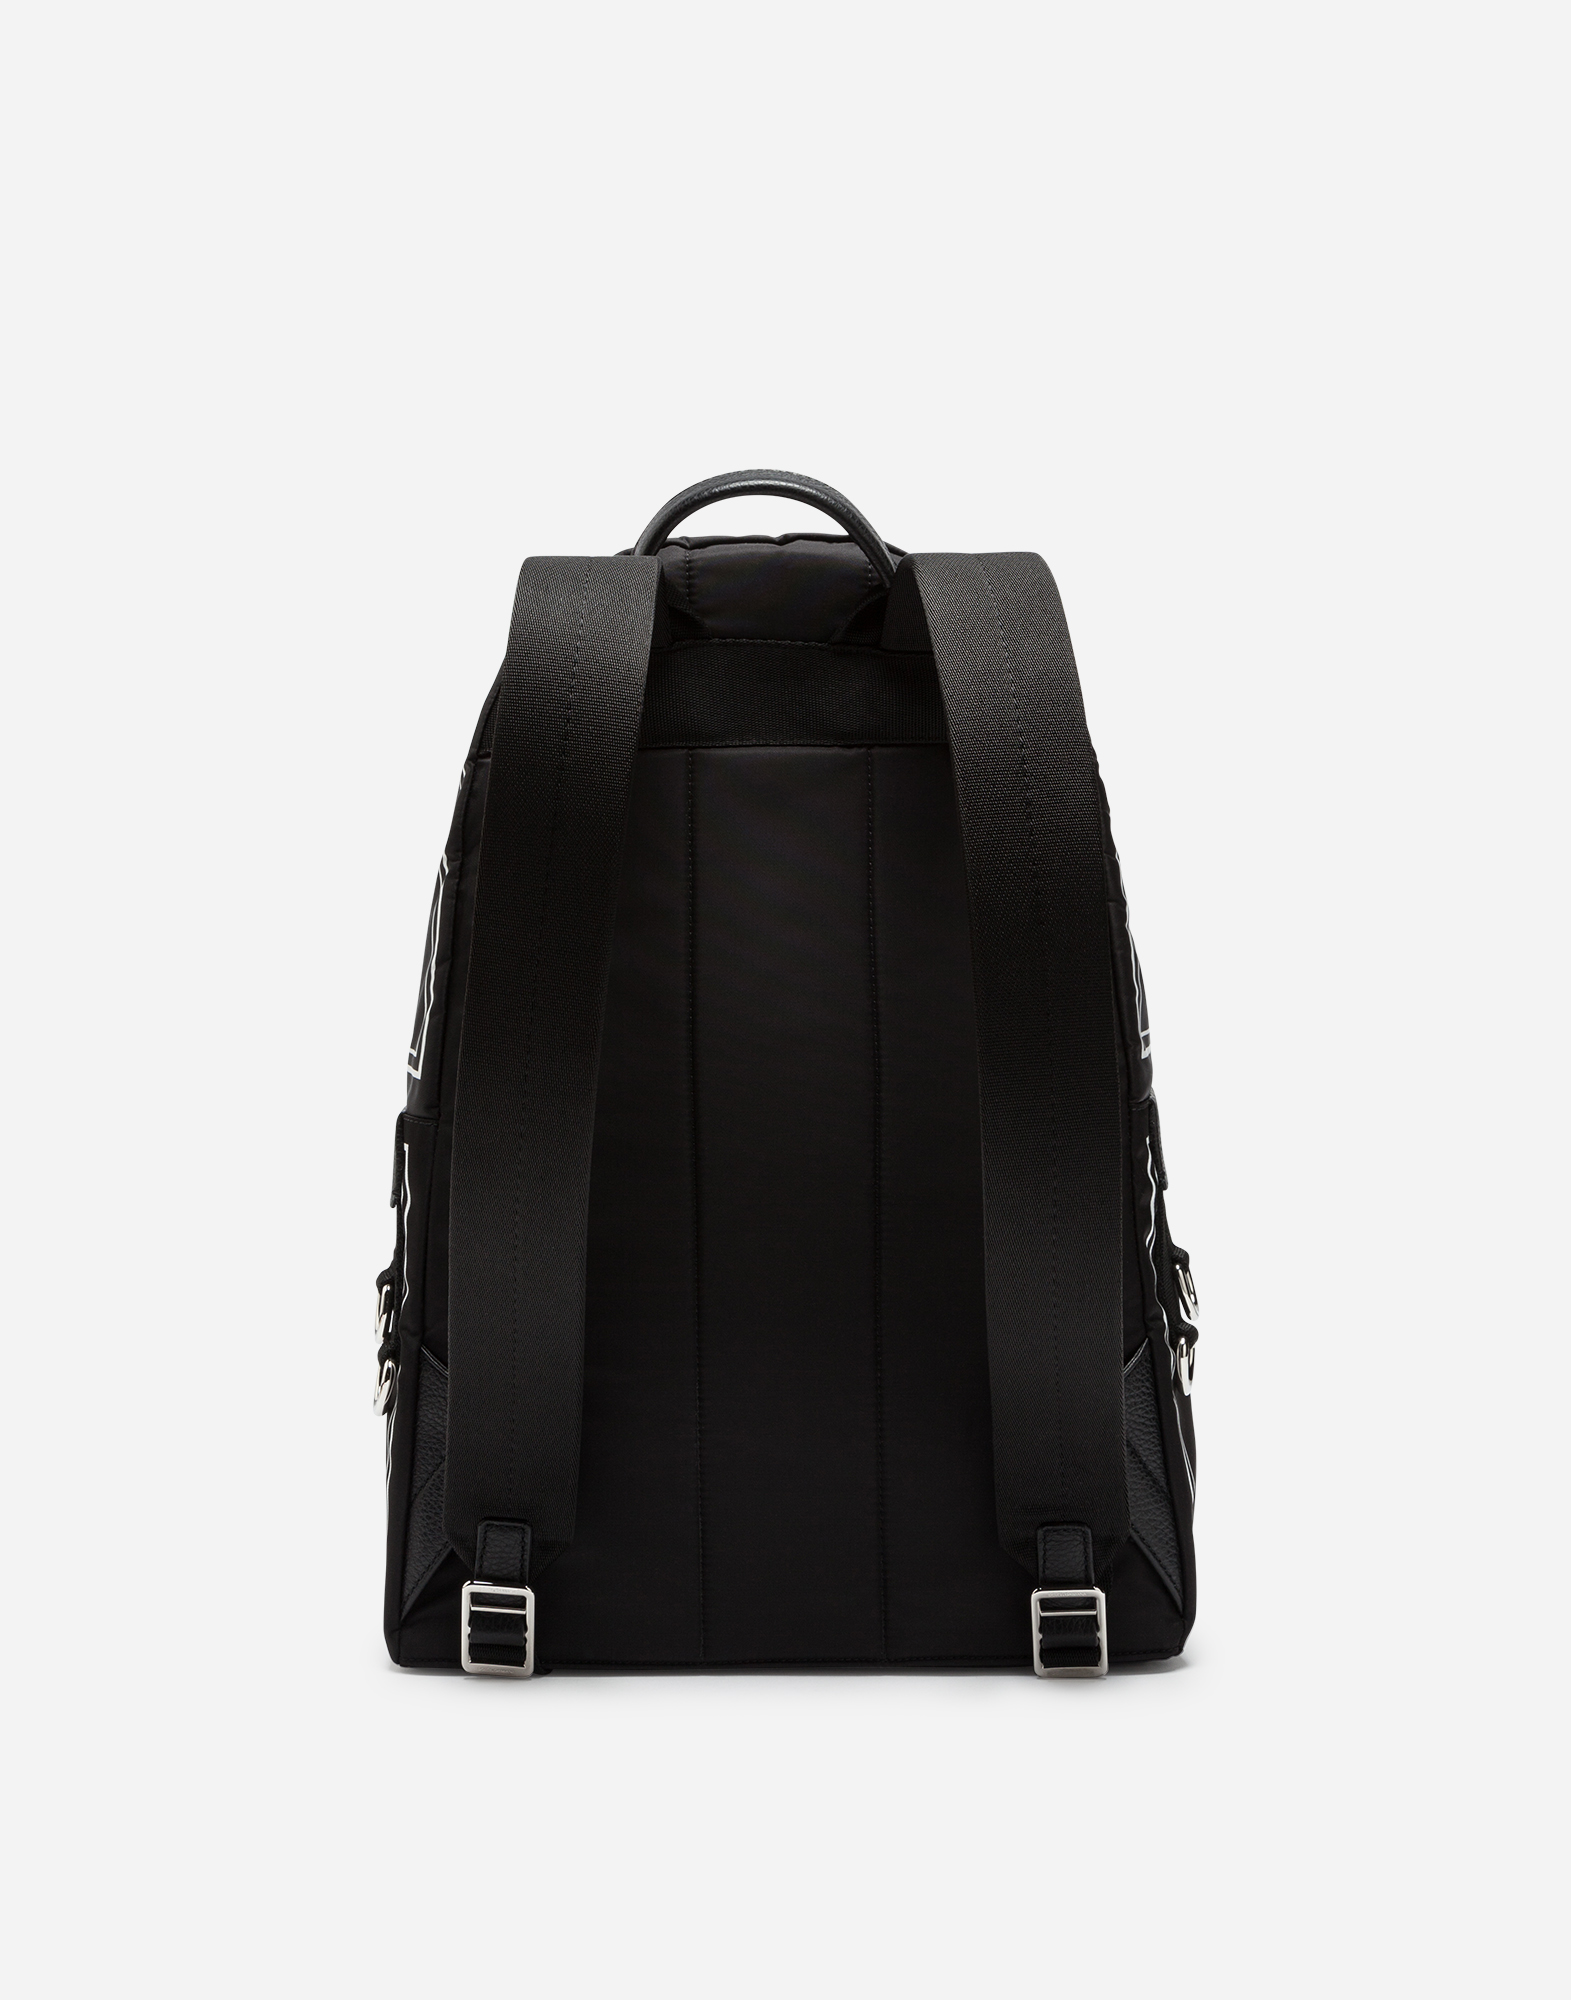 Dolce&Gabbana PRINTED NYLON VULCANO BACKPACK